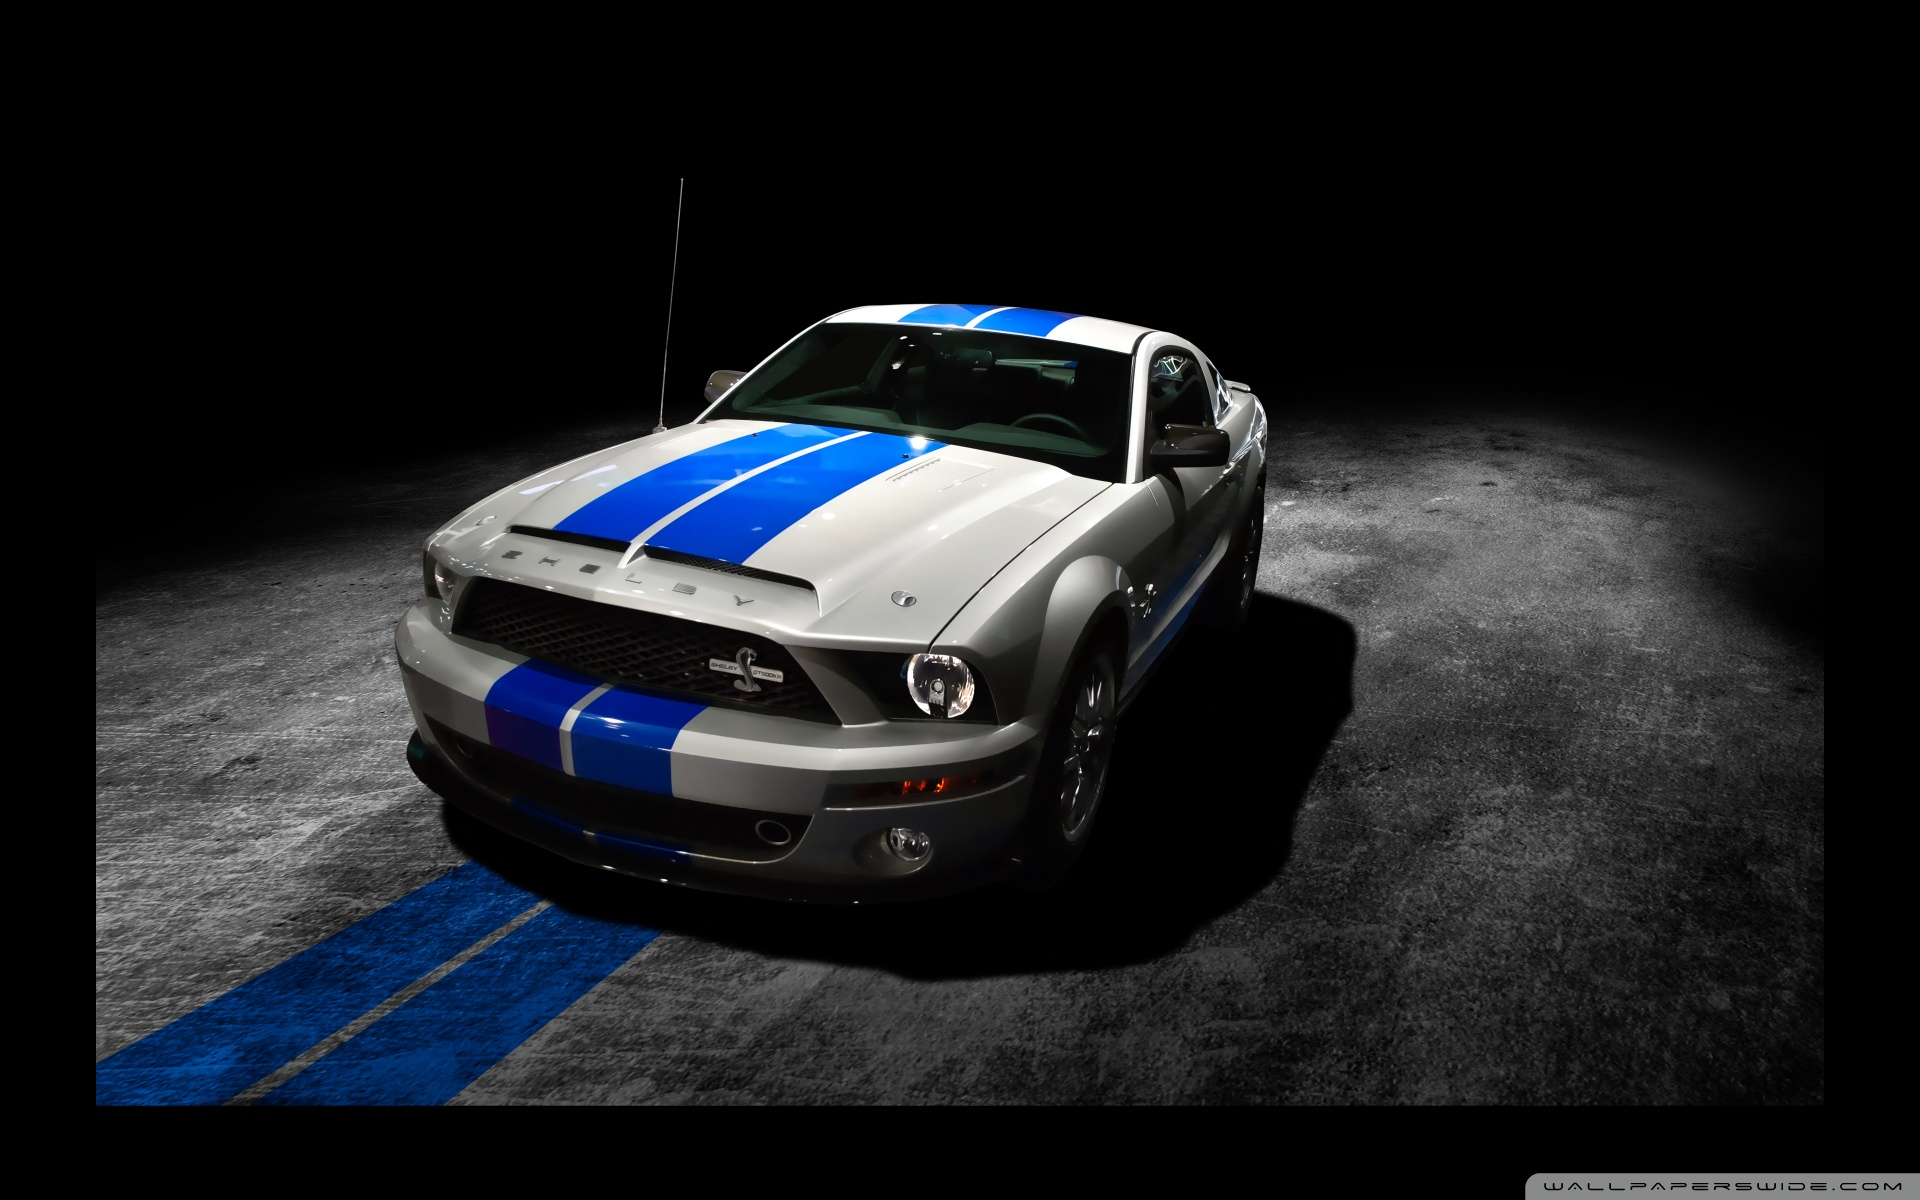 hot new movies/cars images ford mustang hd wallpaper and background